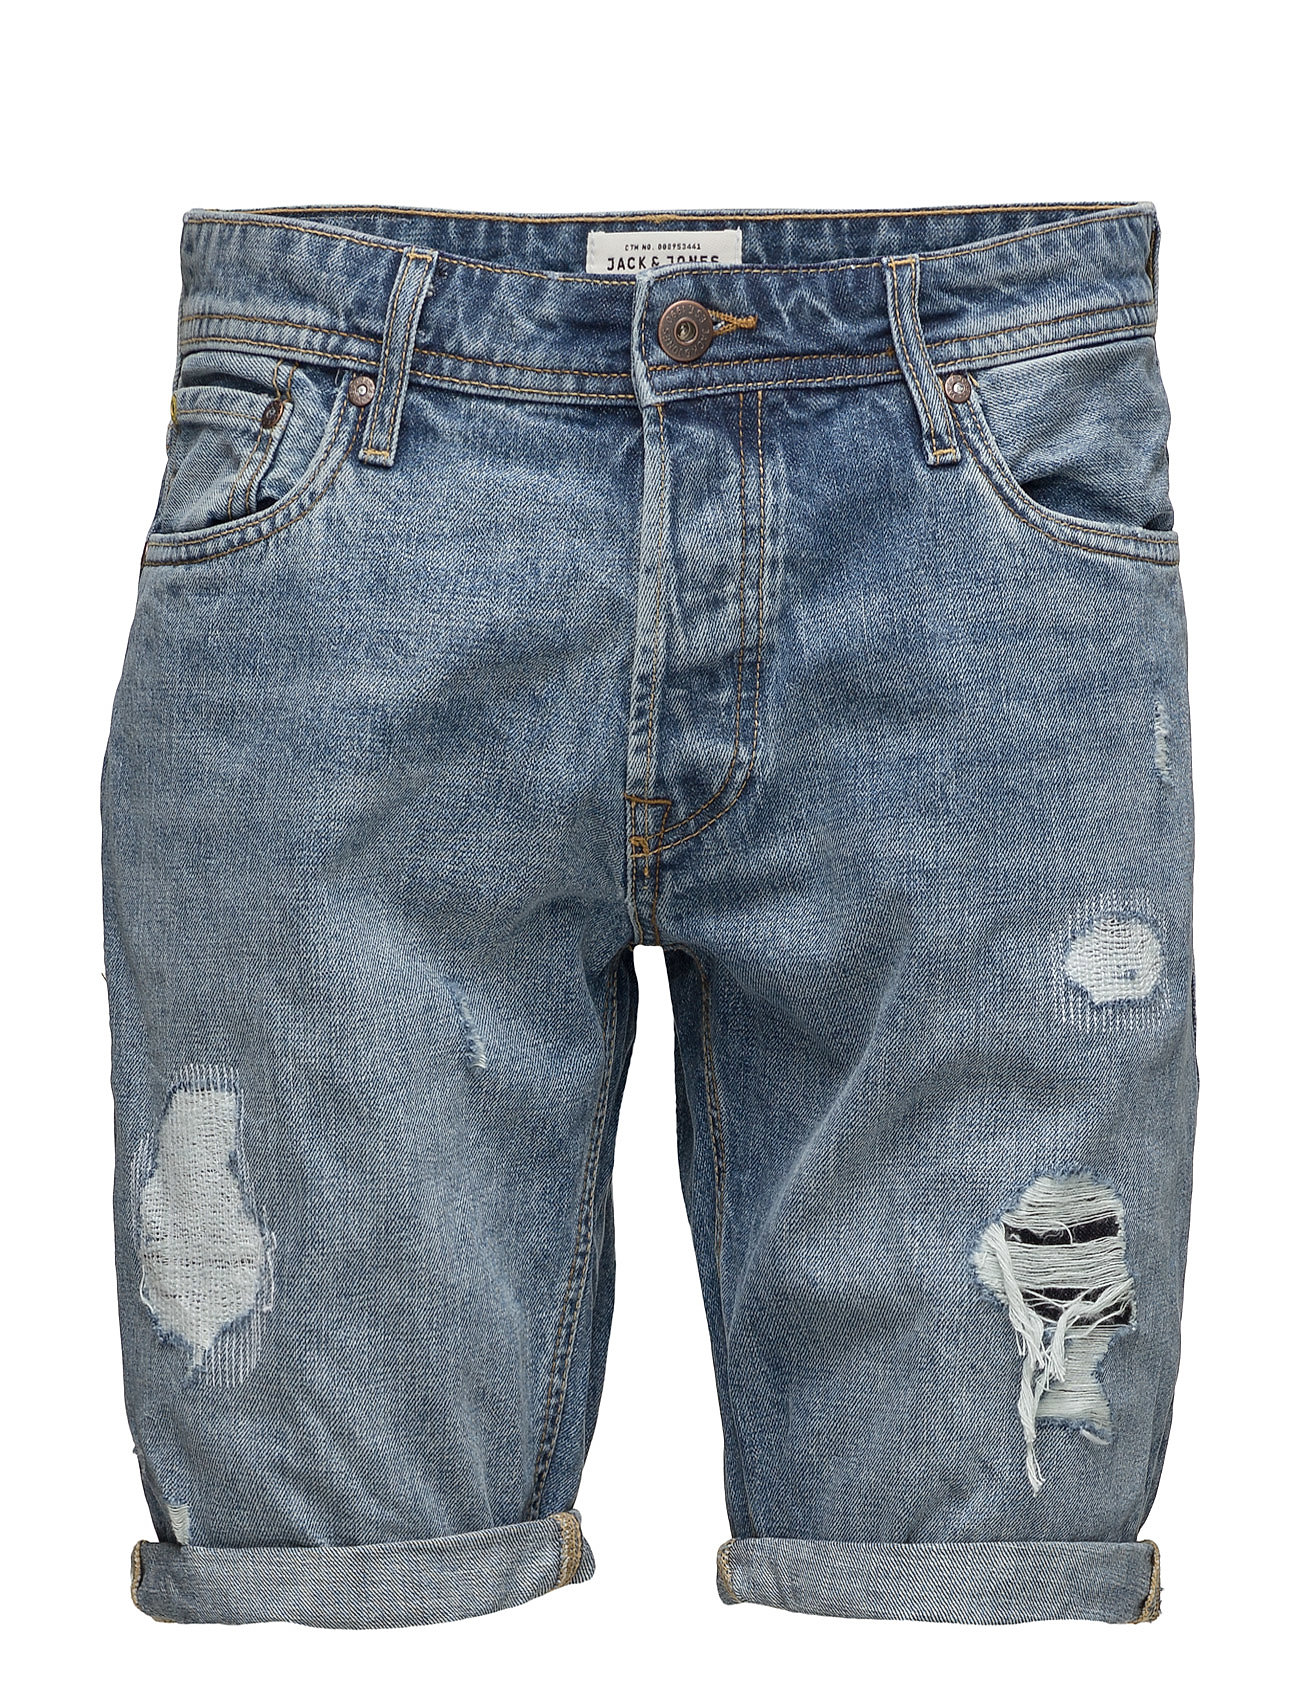 jack & jones – Jjirick jjoriginal shorts am 105 sts på boozt.com dk